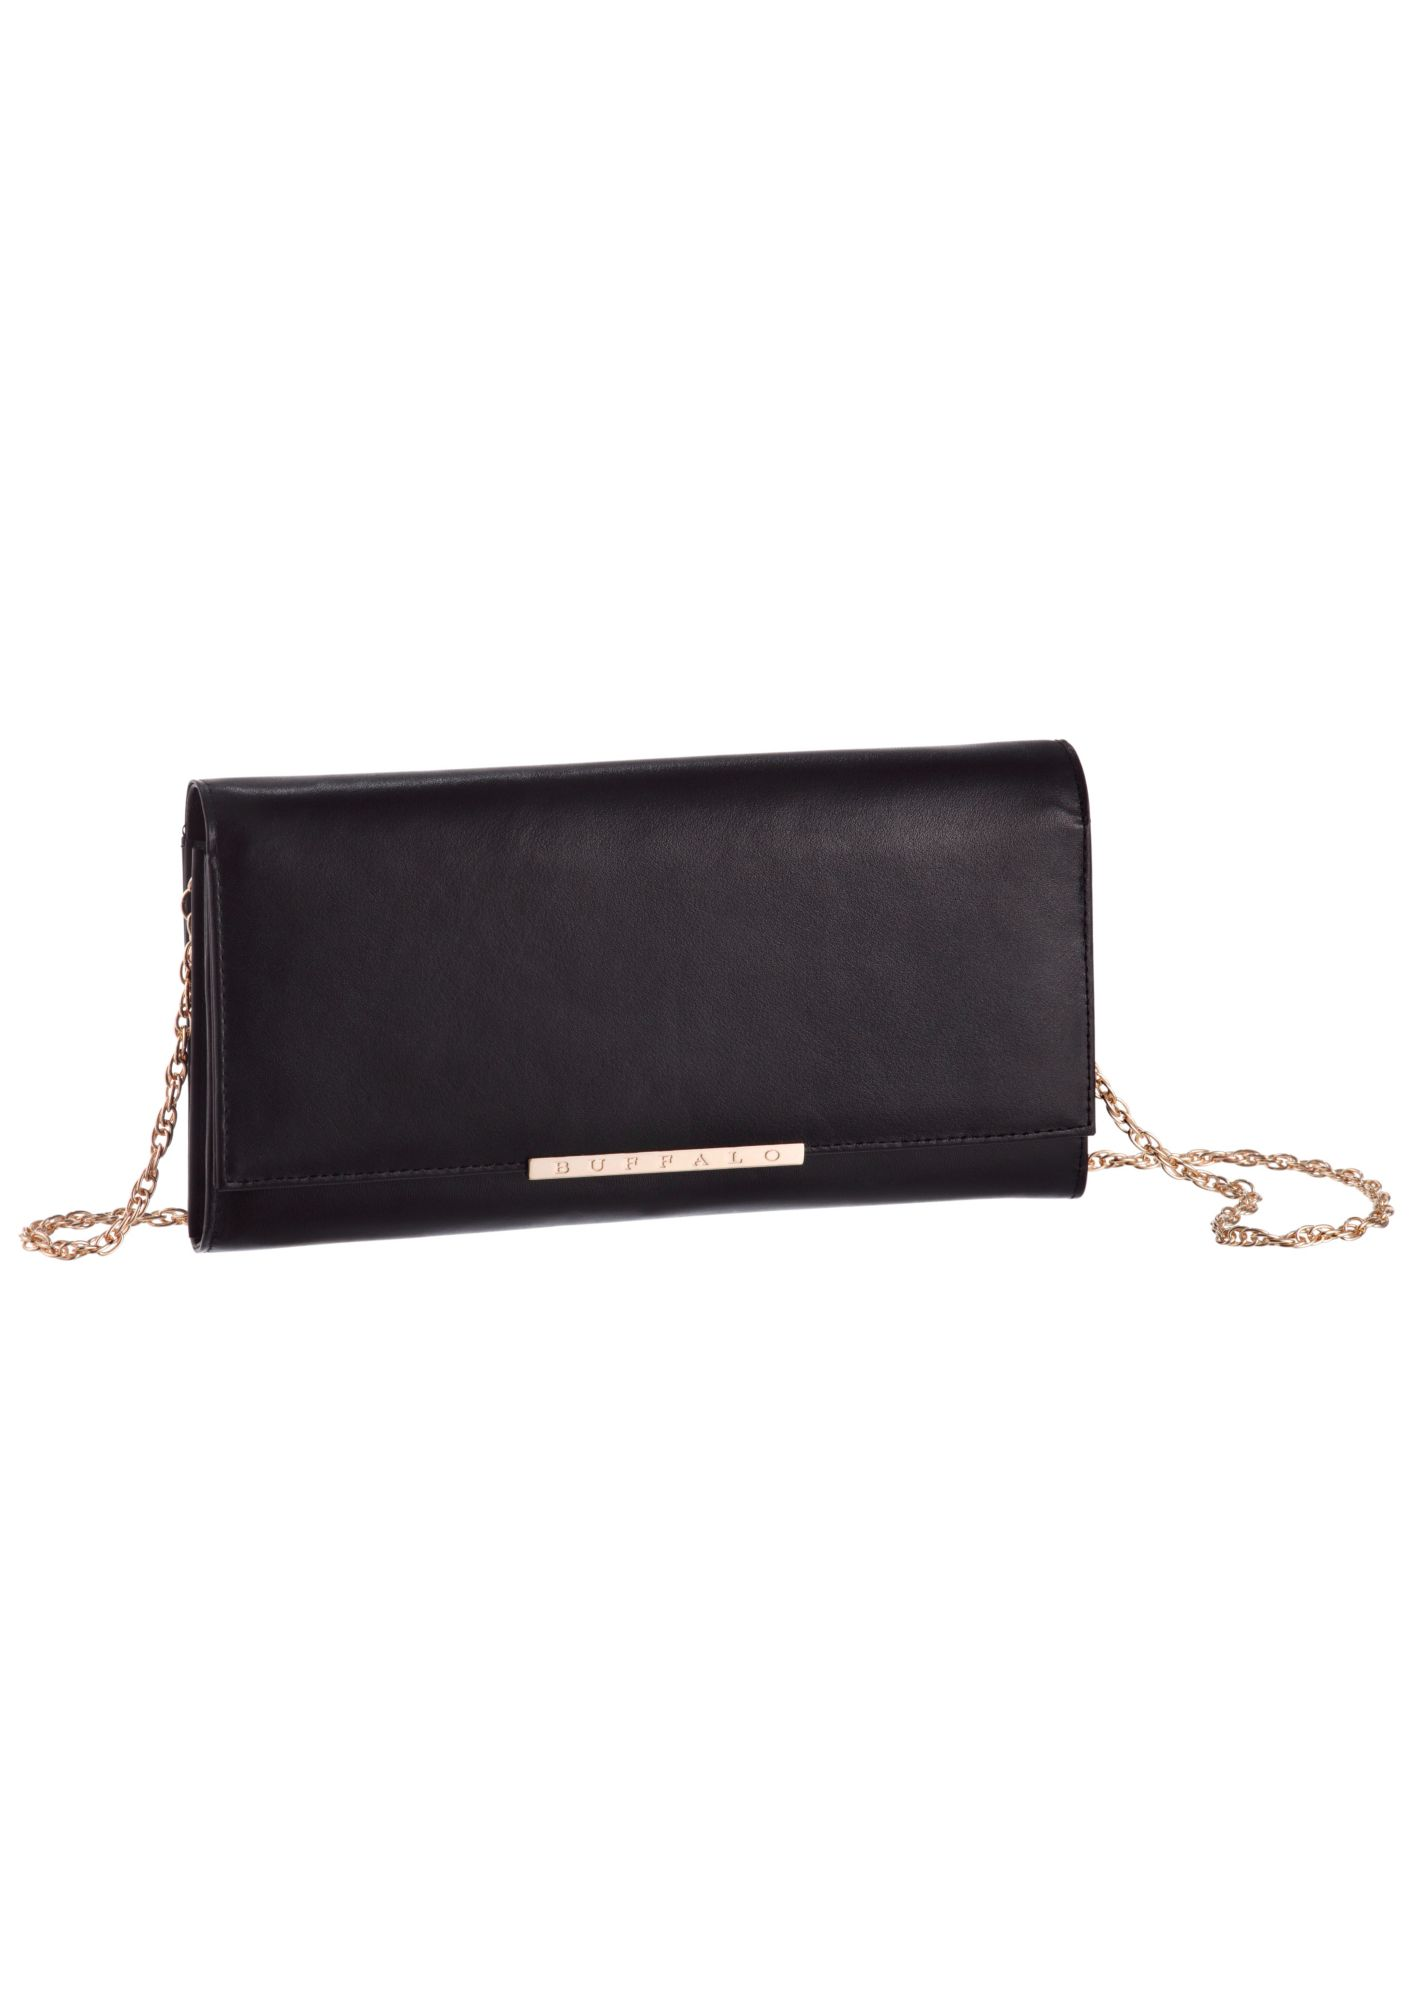 BUFFALO Buffalo Clutch mit goldfarbenen Applikationen